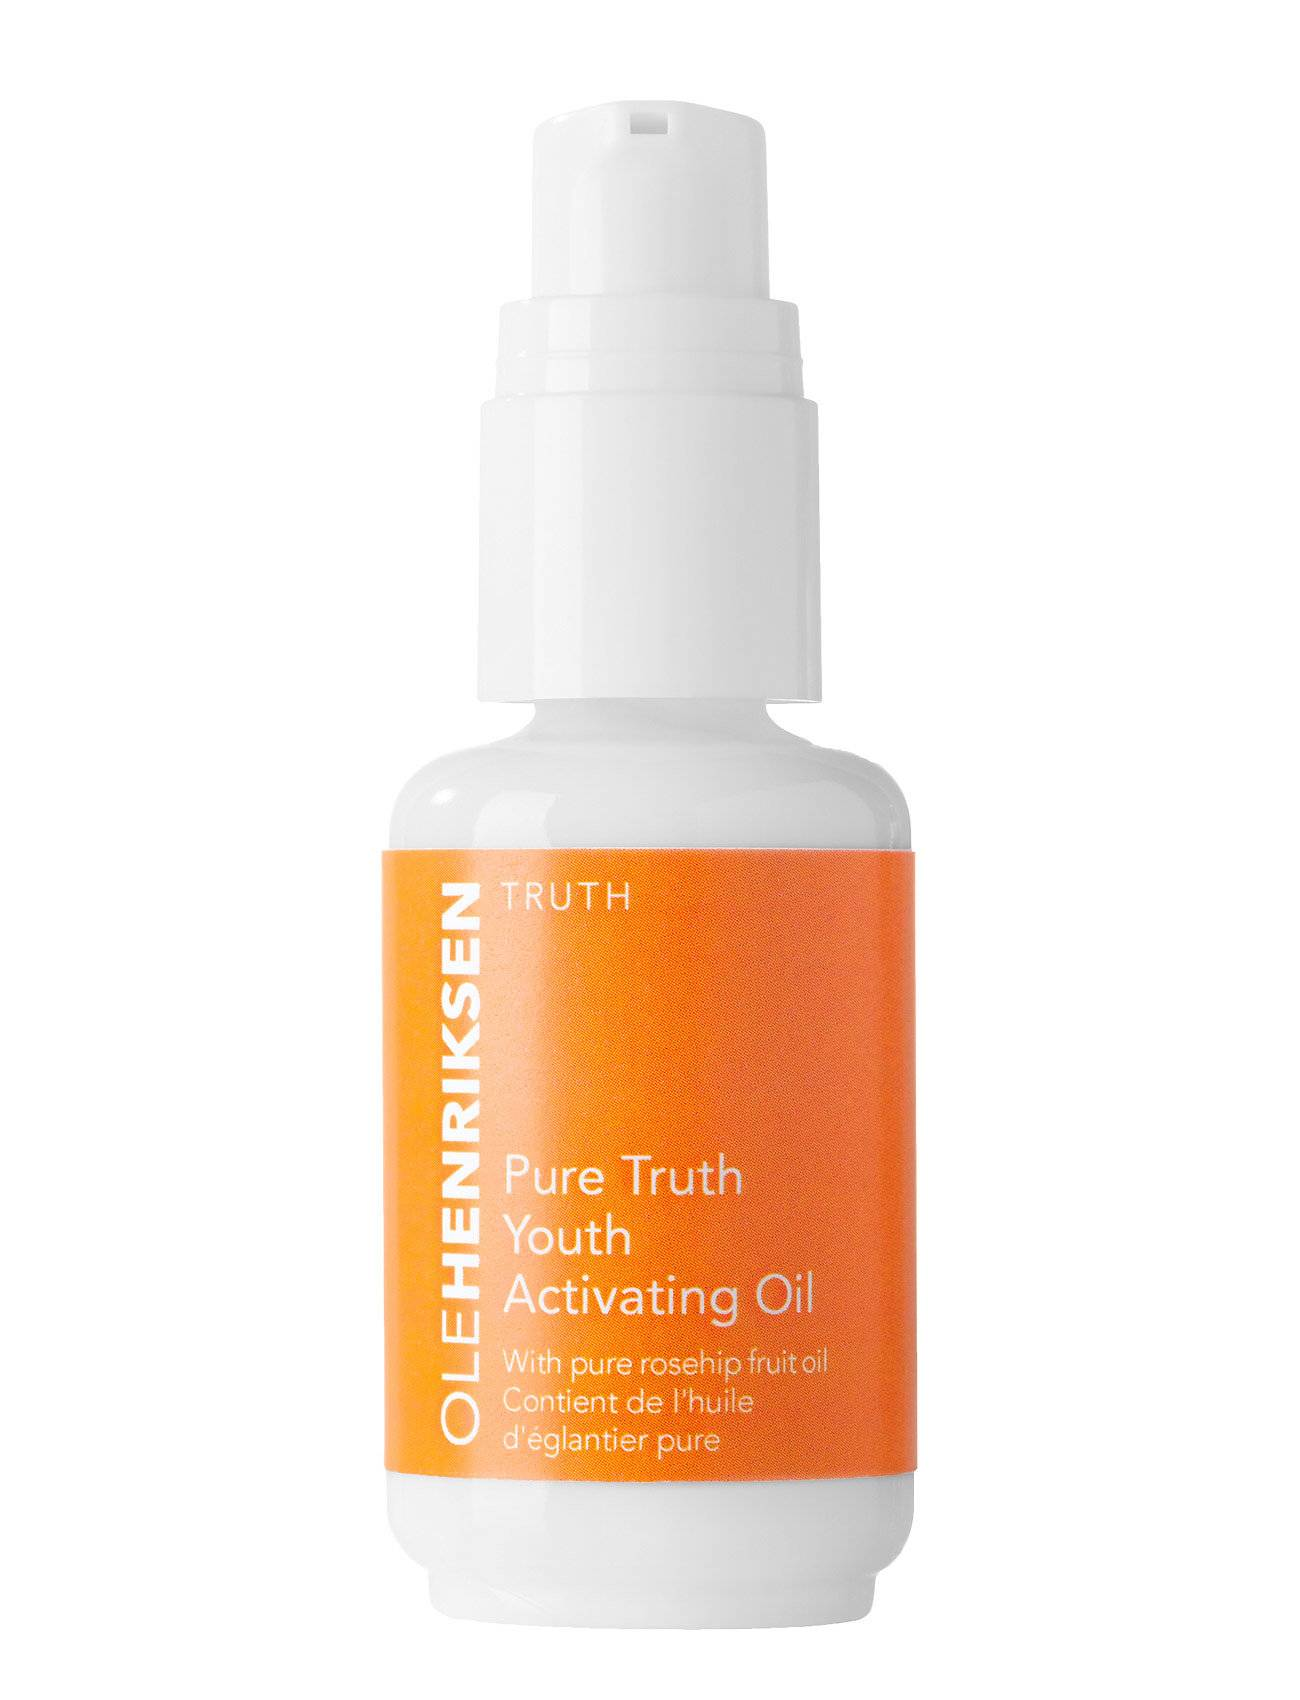 Ole Henriksen Truth Pure Youth Activating Oil